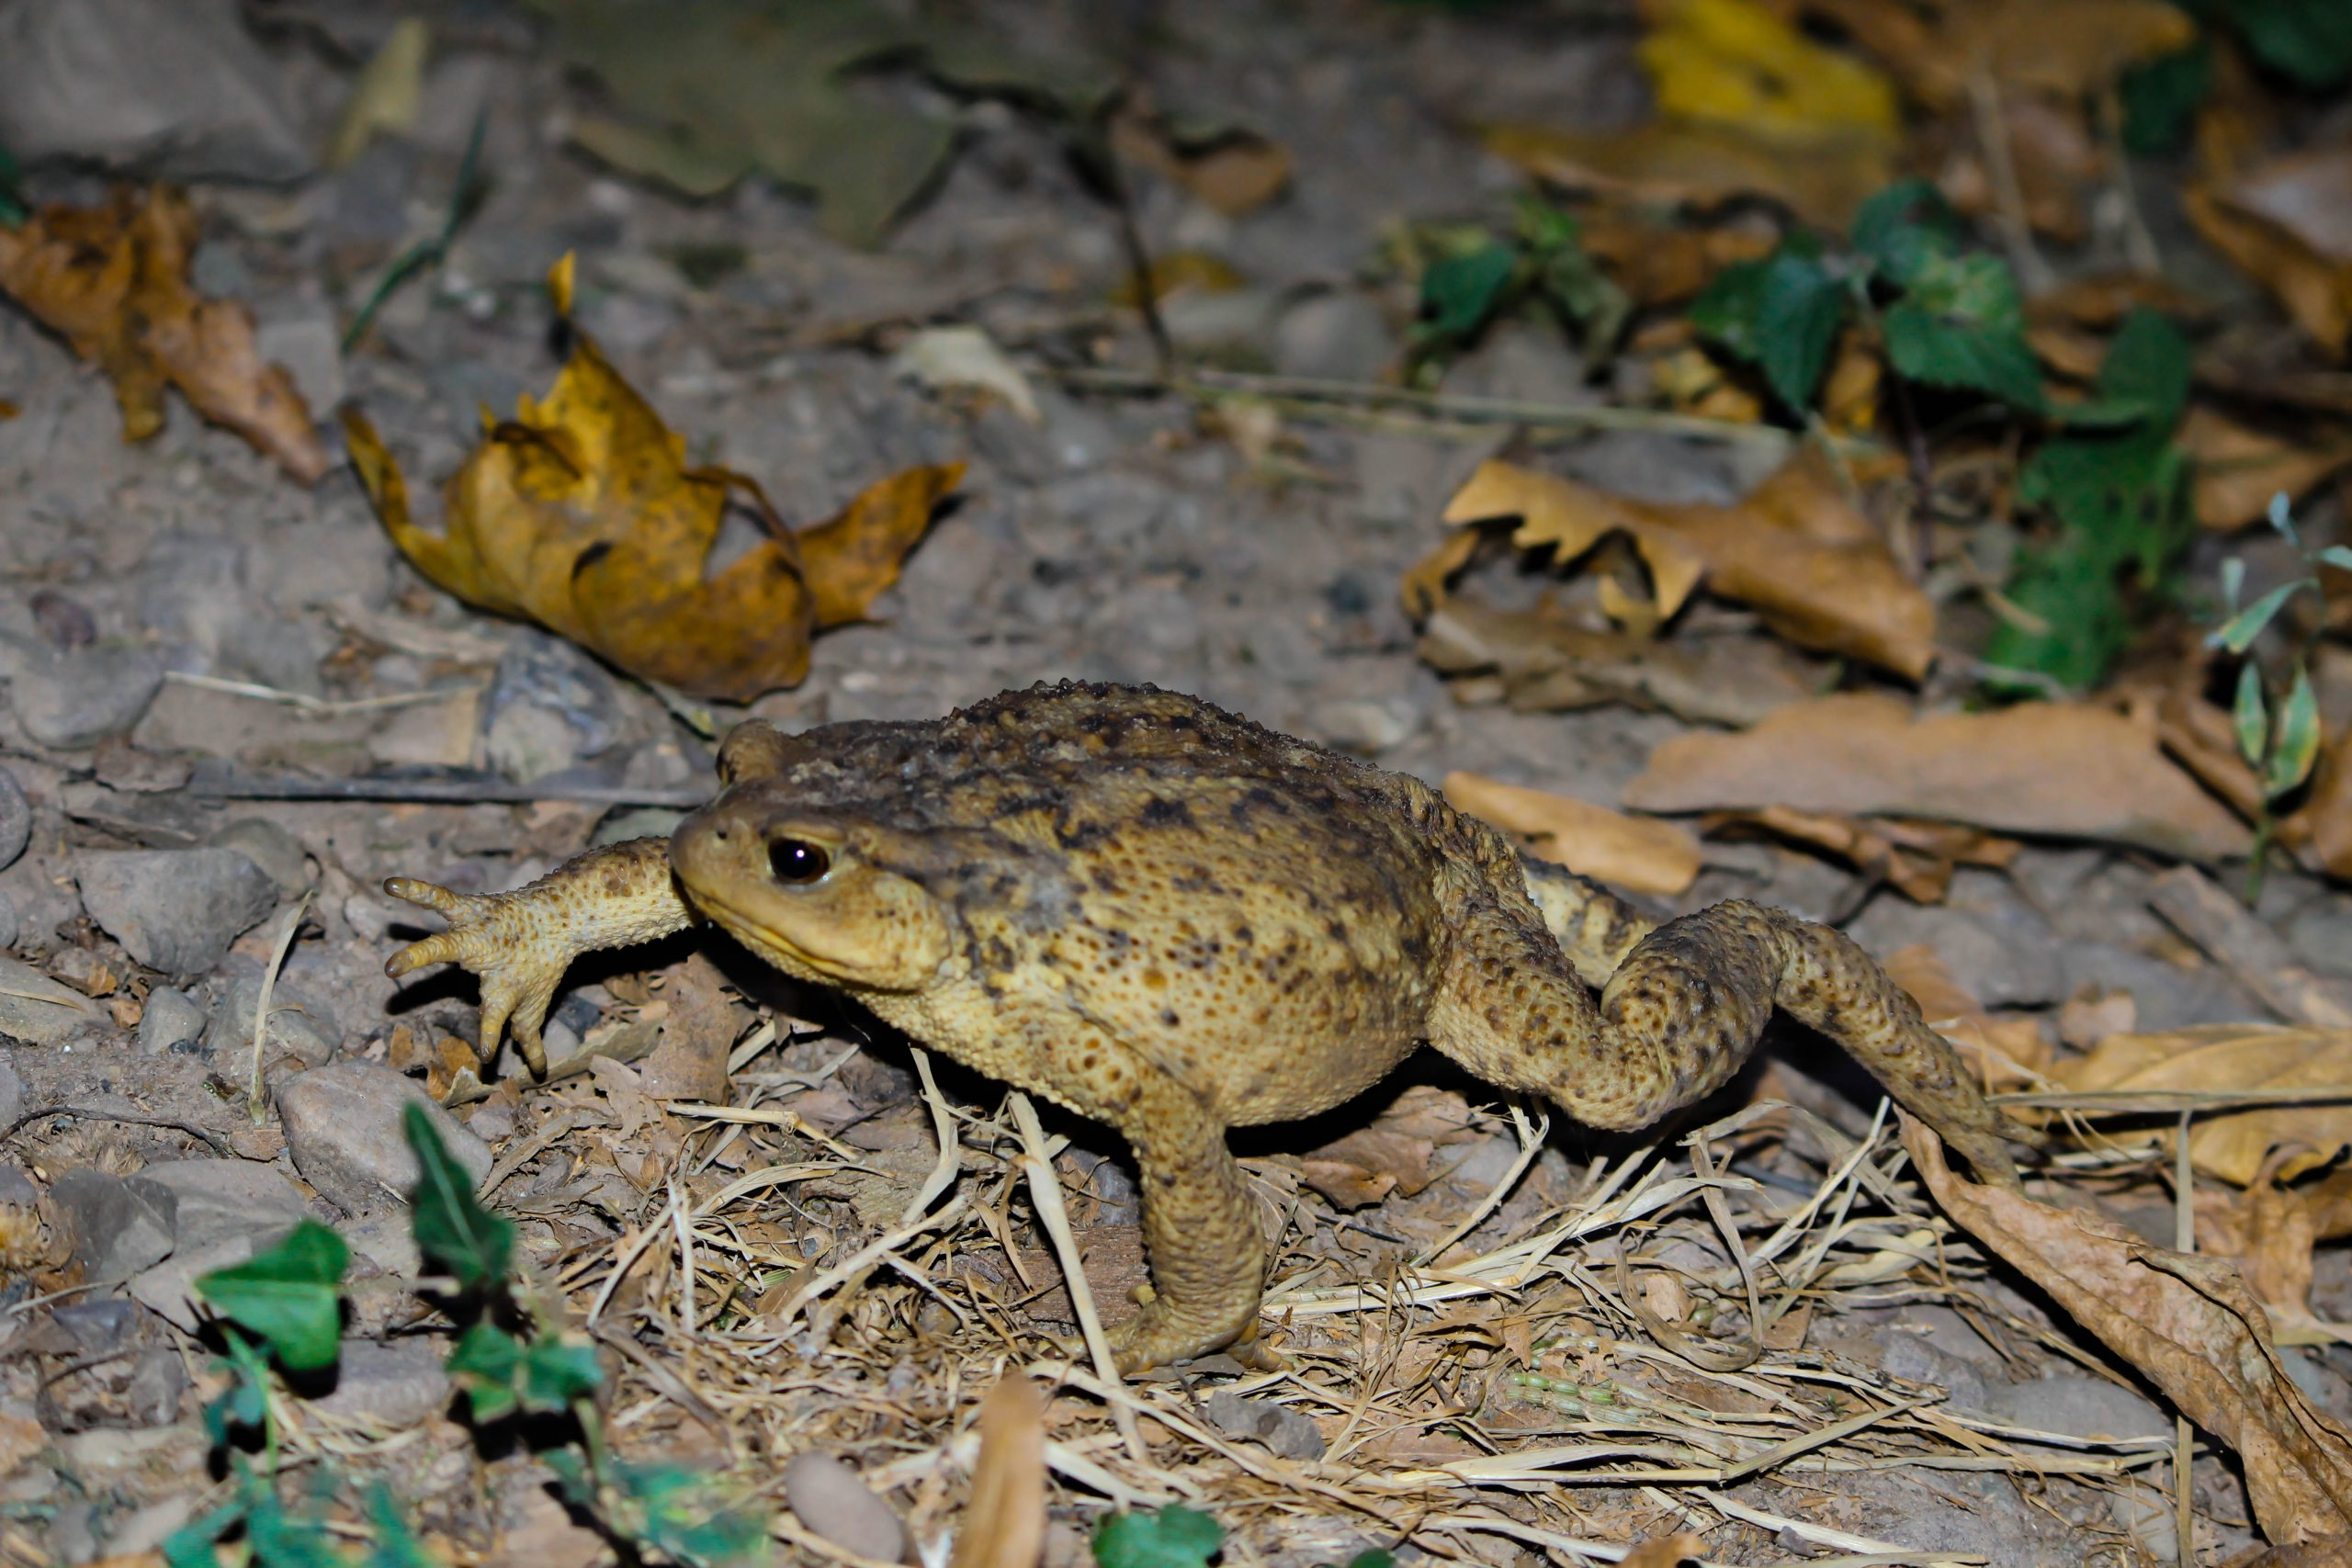 Common Toad on Focus